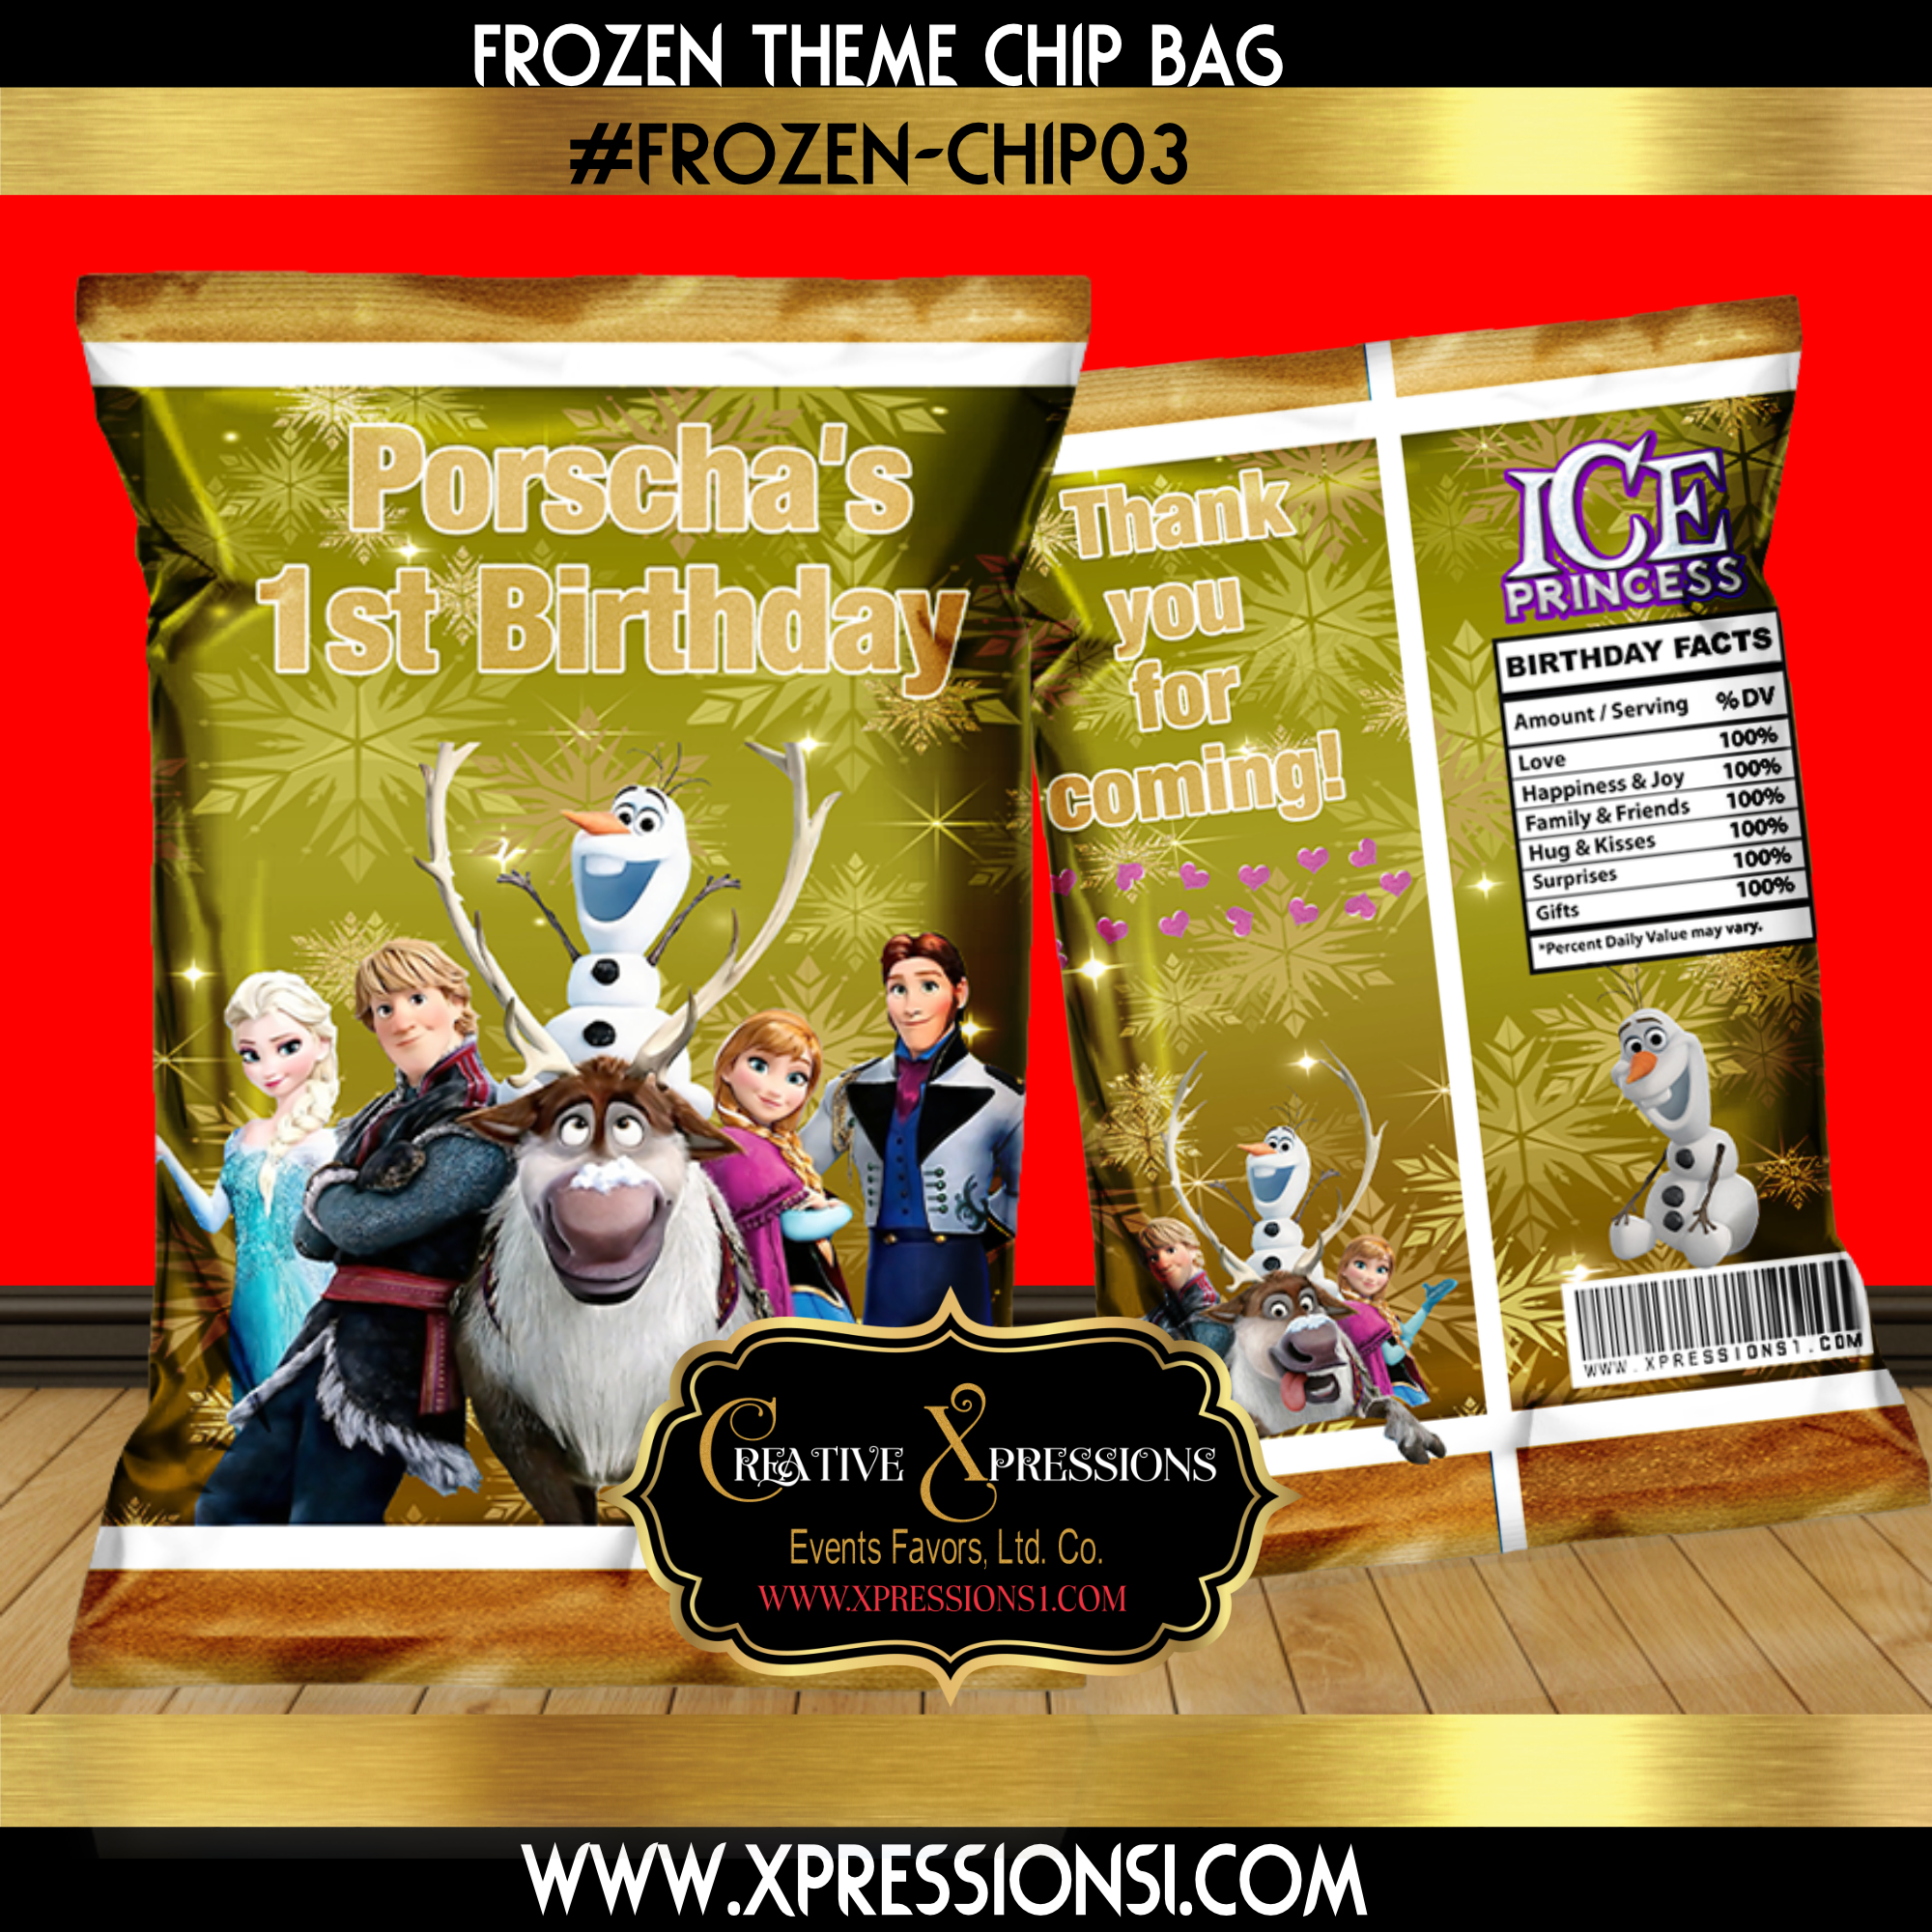 Frozen Gold Chip Bag